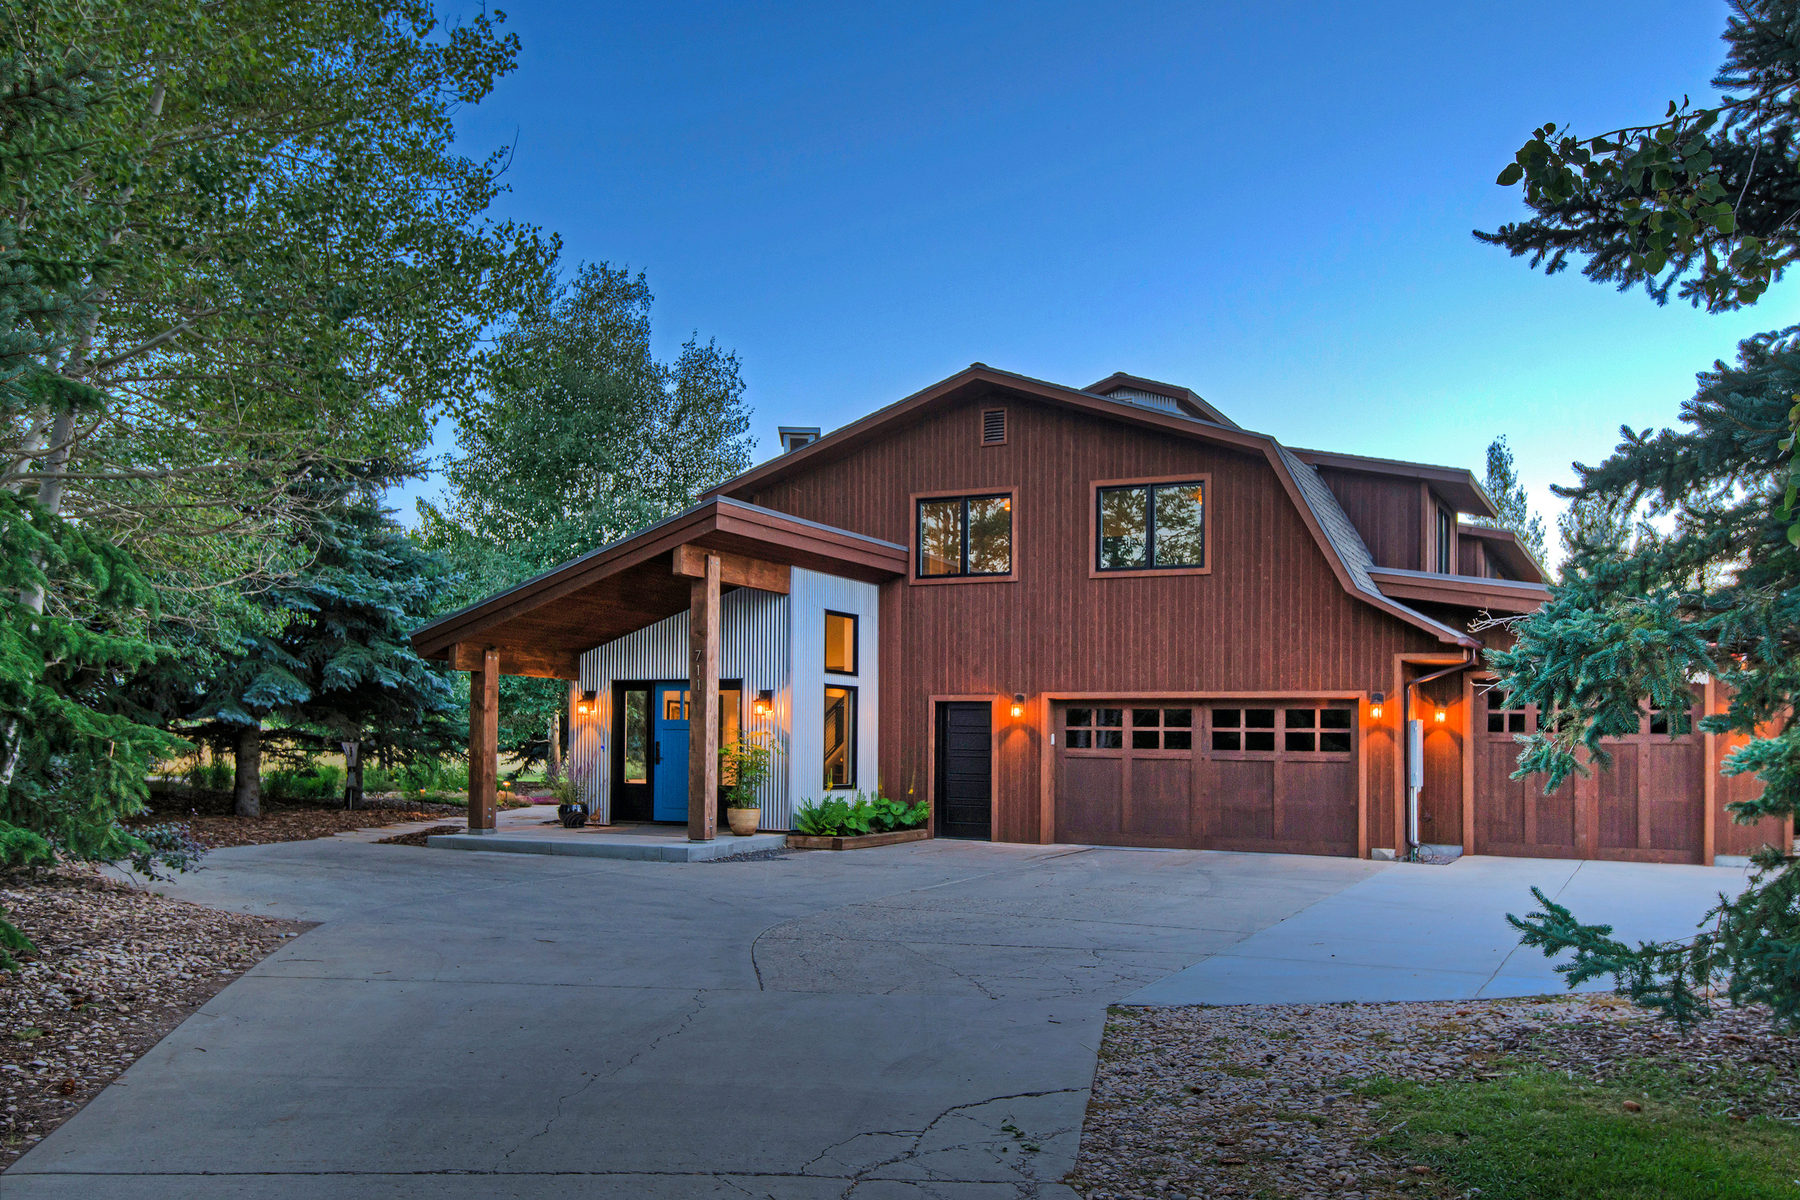 Casa Unifamiliar por un Venta en Treasure Mountain Estates 711 West 5200 North Park City, Utah 84098 Estados Unidos